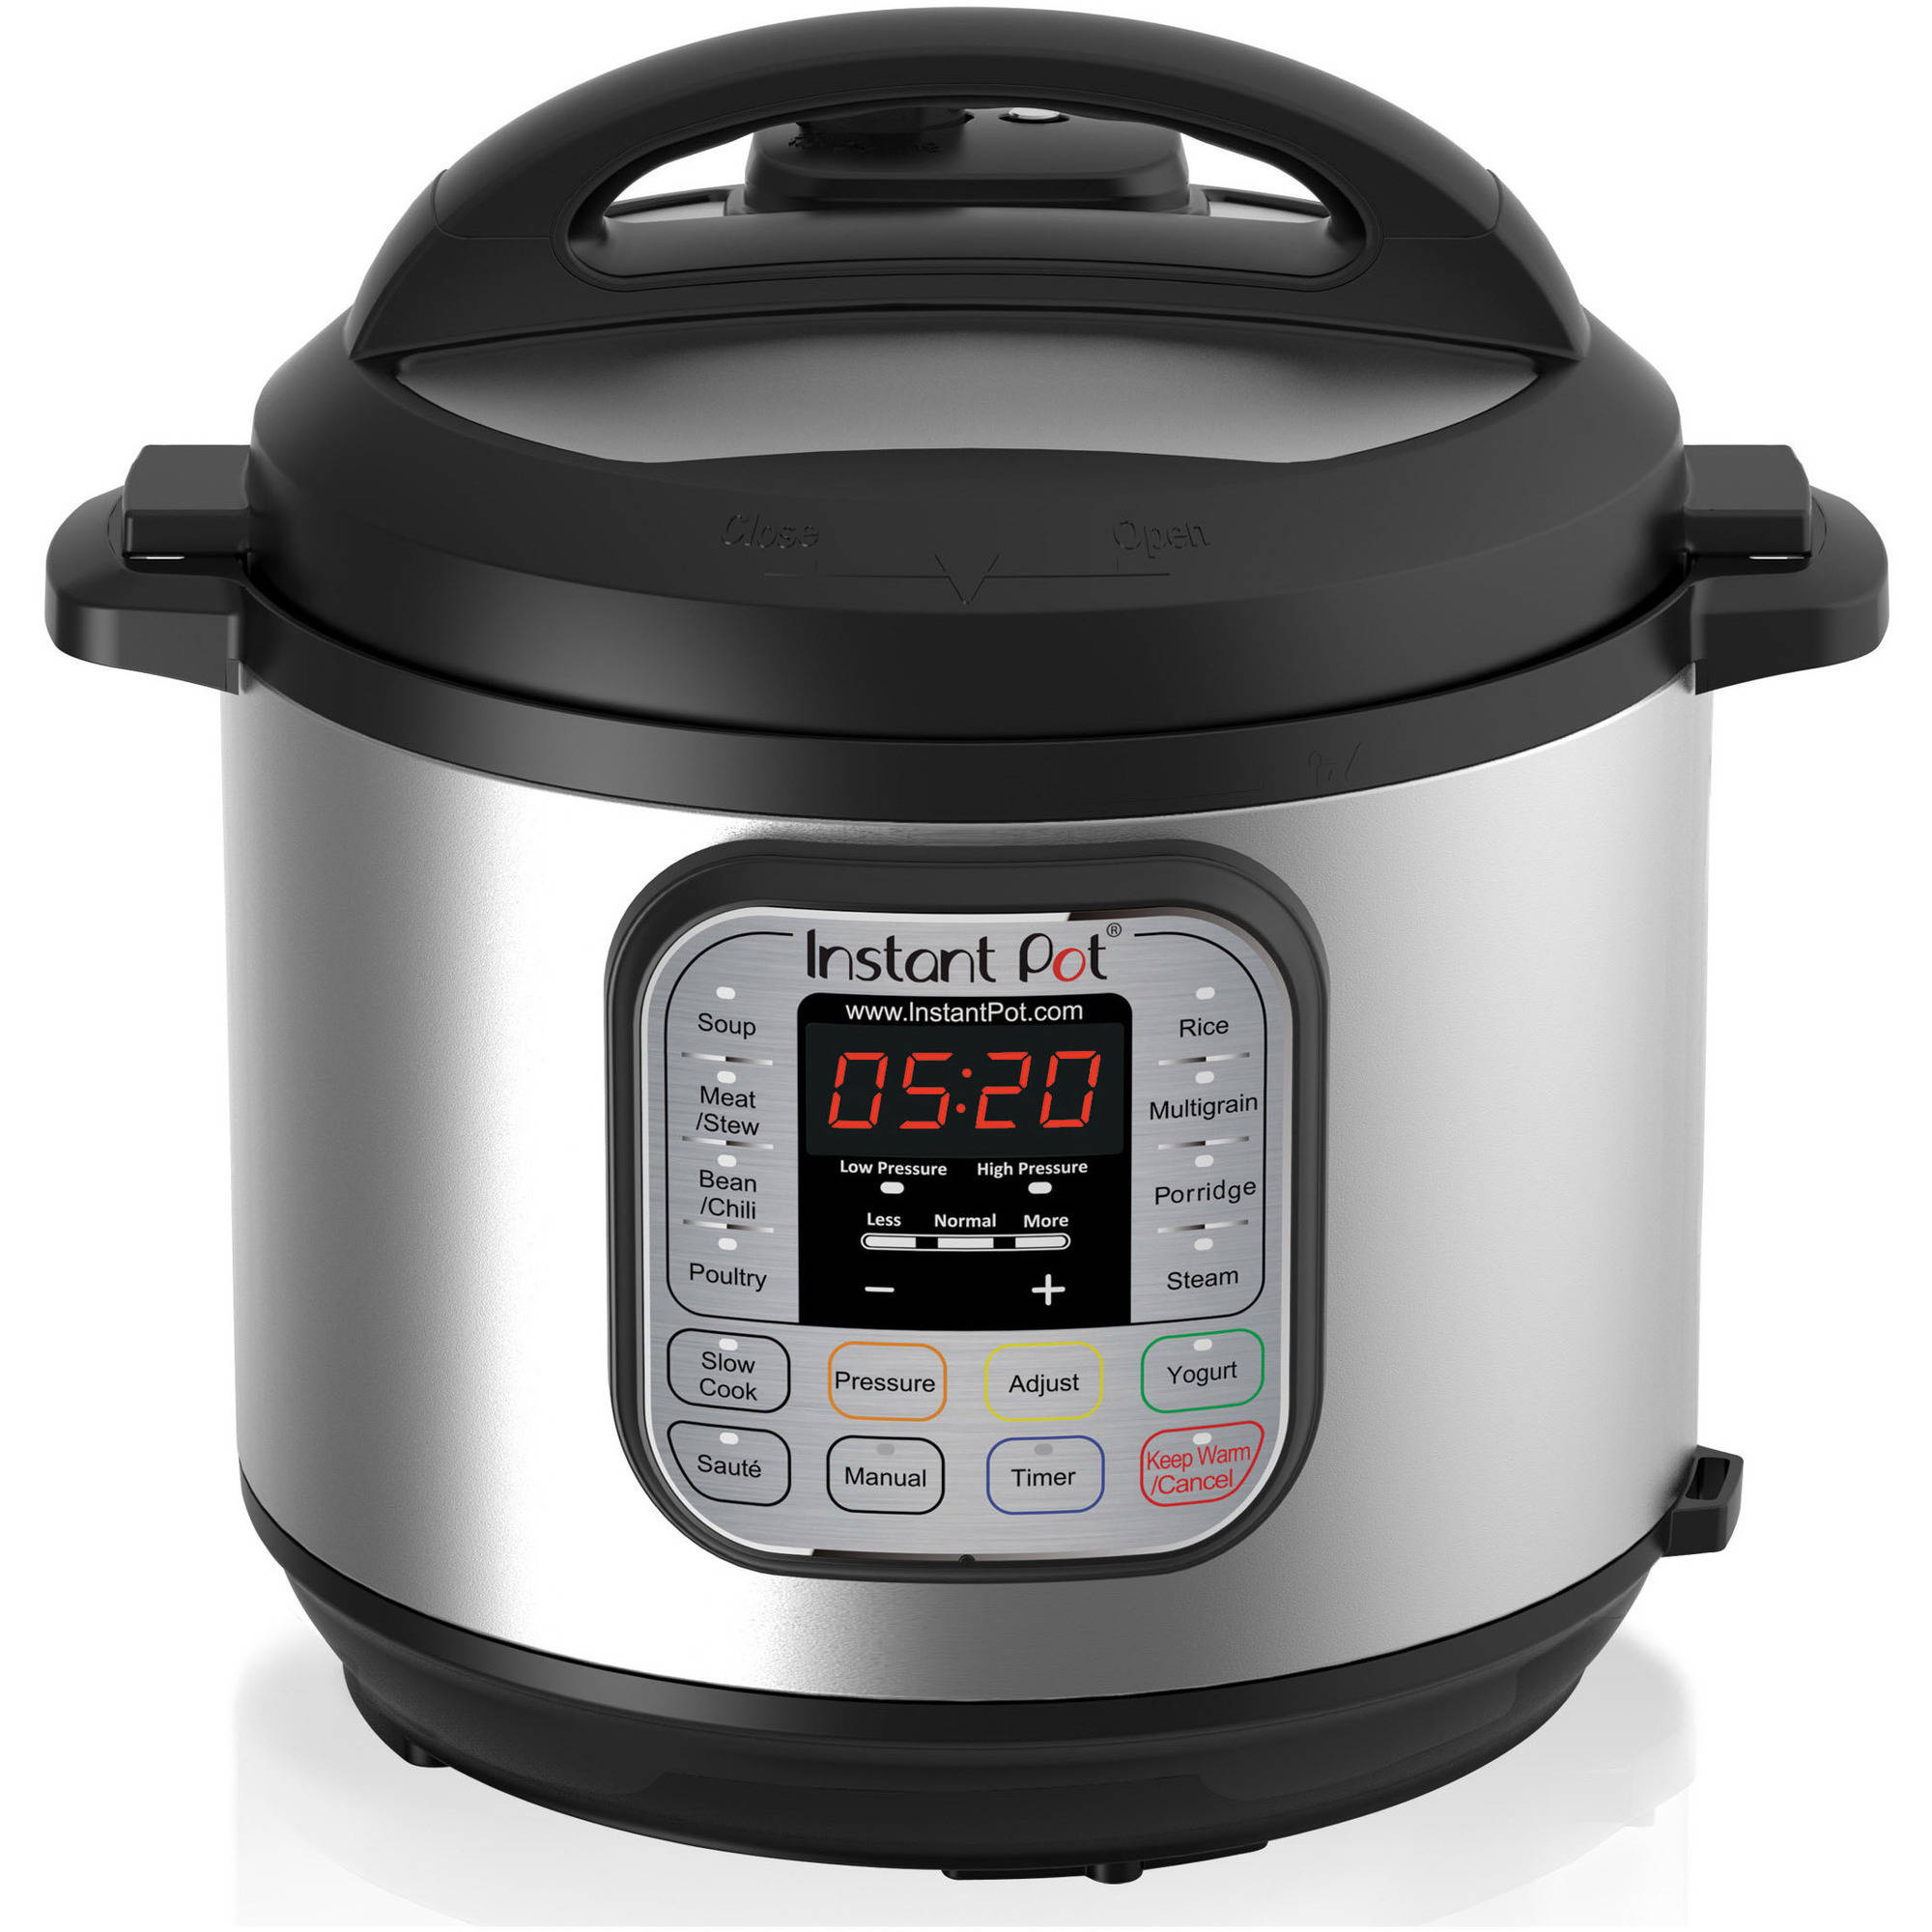 Instant Pot IP-DUO60-ENW Stainless Steel 7-in-1 Multi-Functional Pressure Cooker